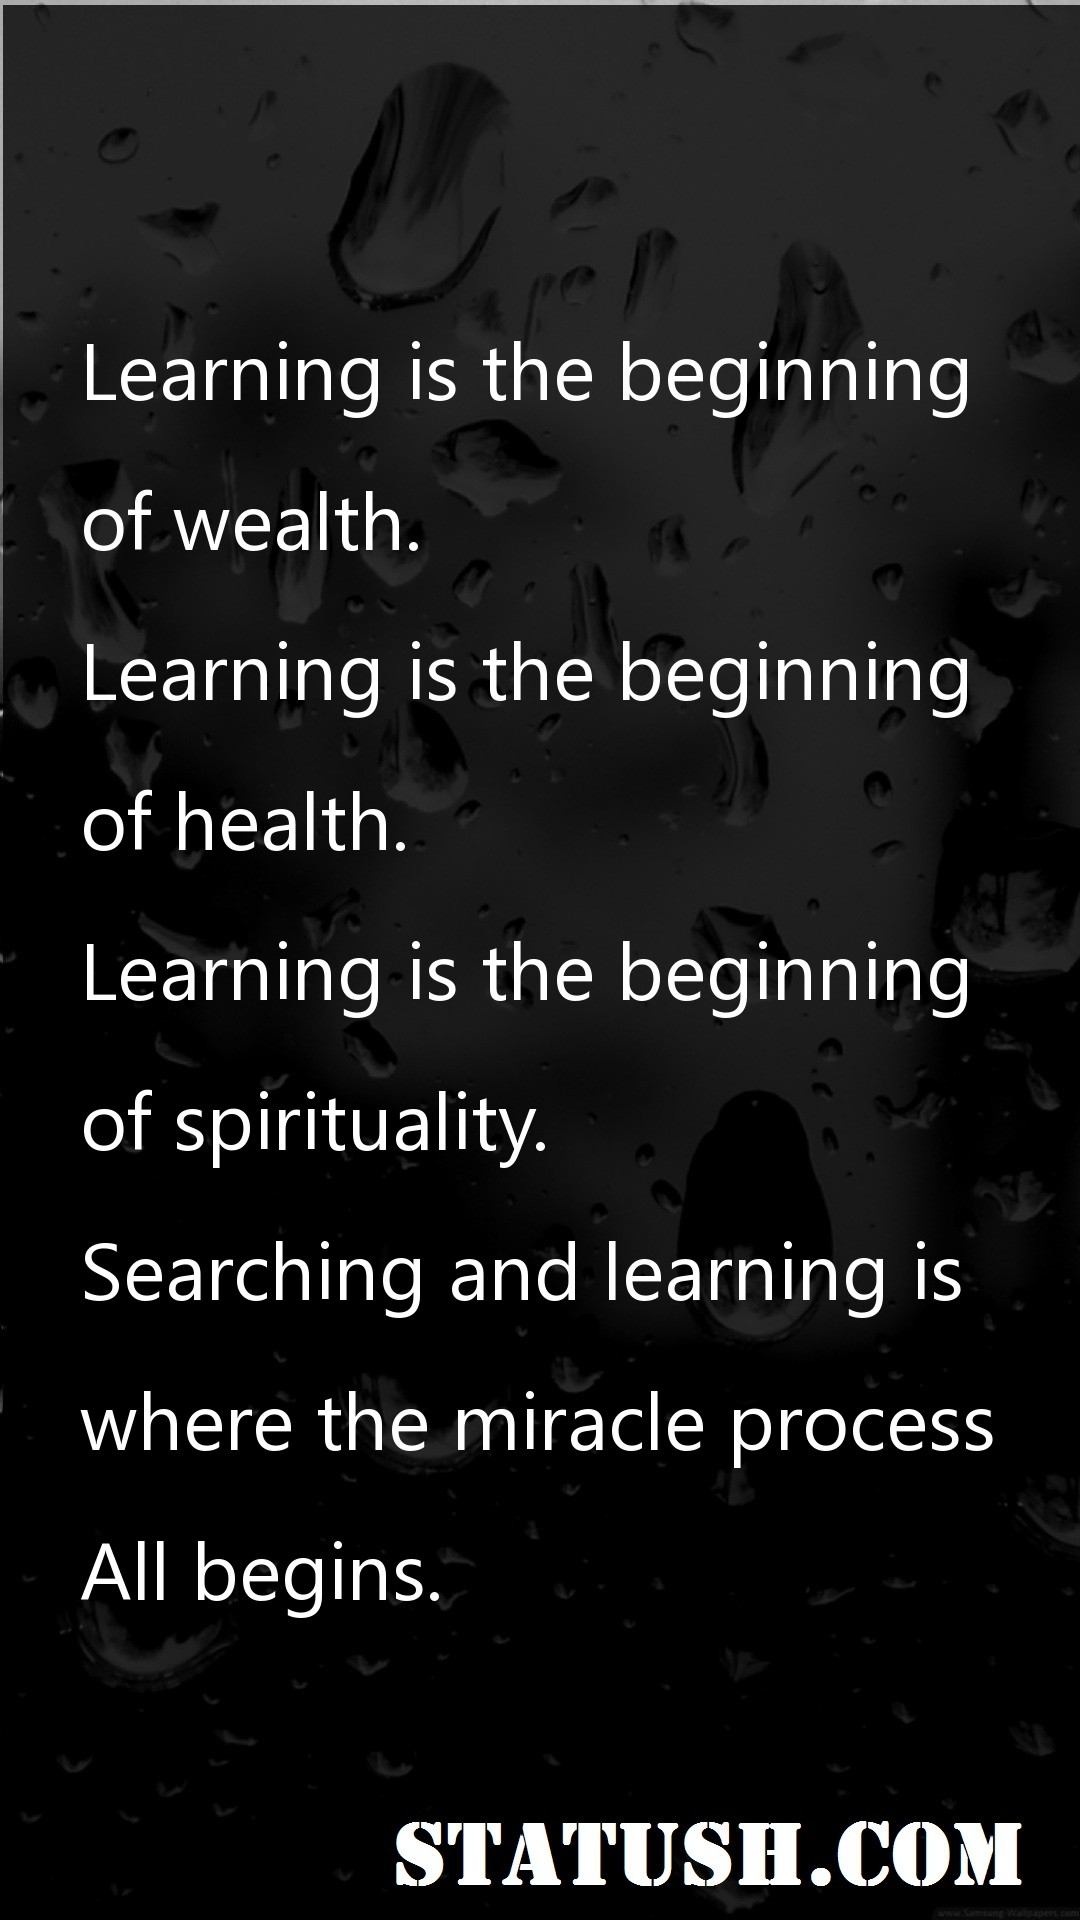 Learning is the beginning